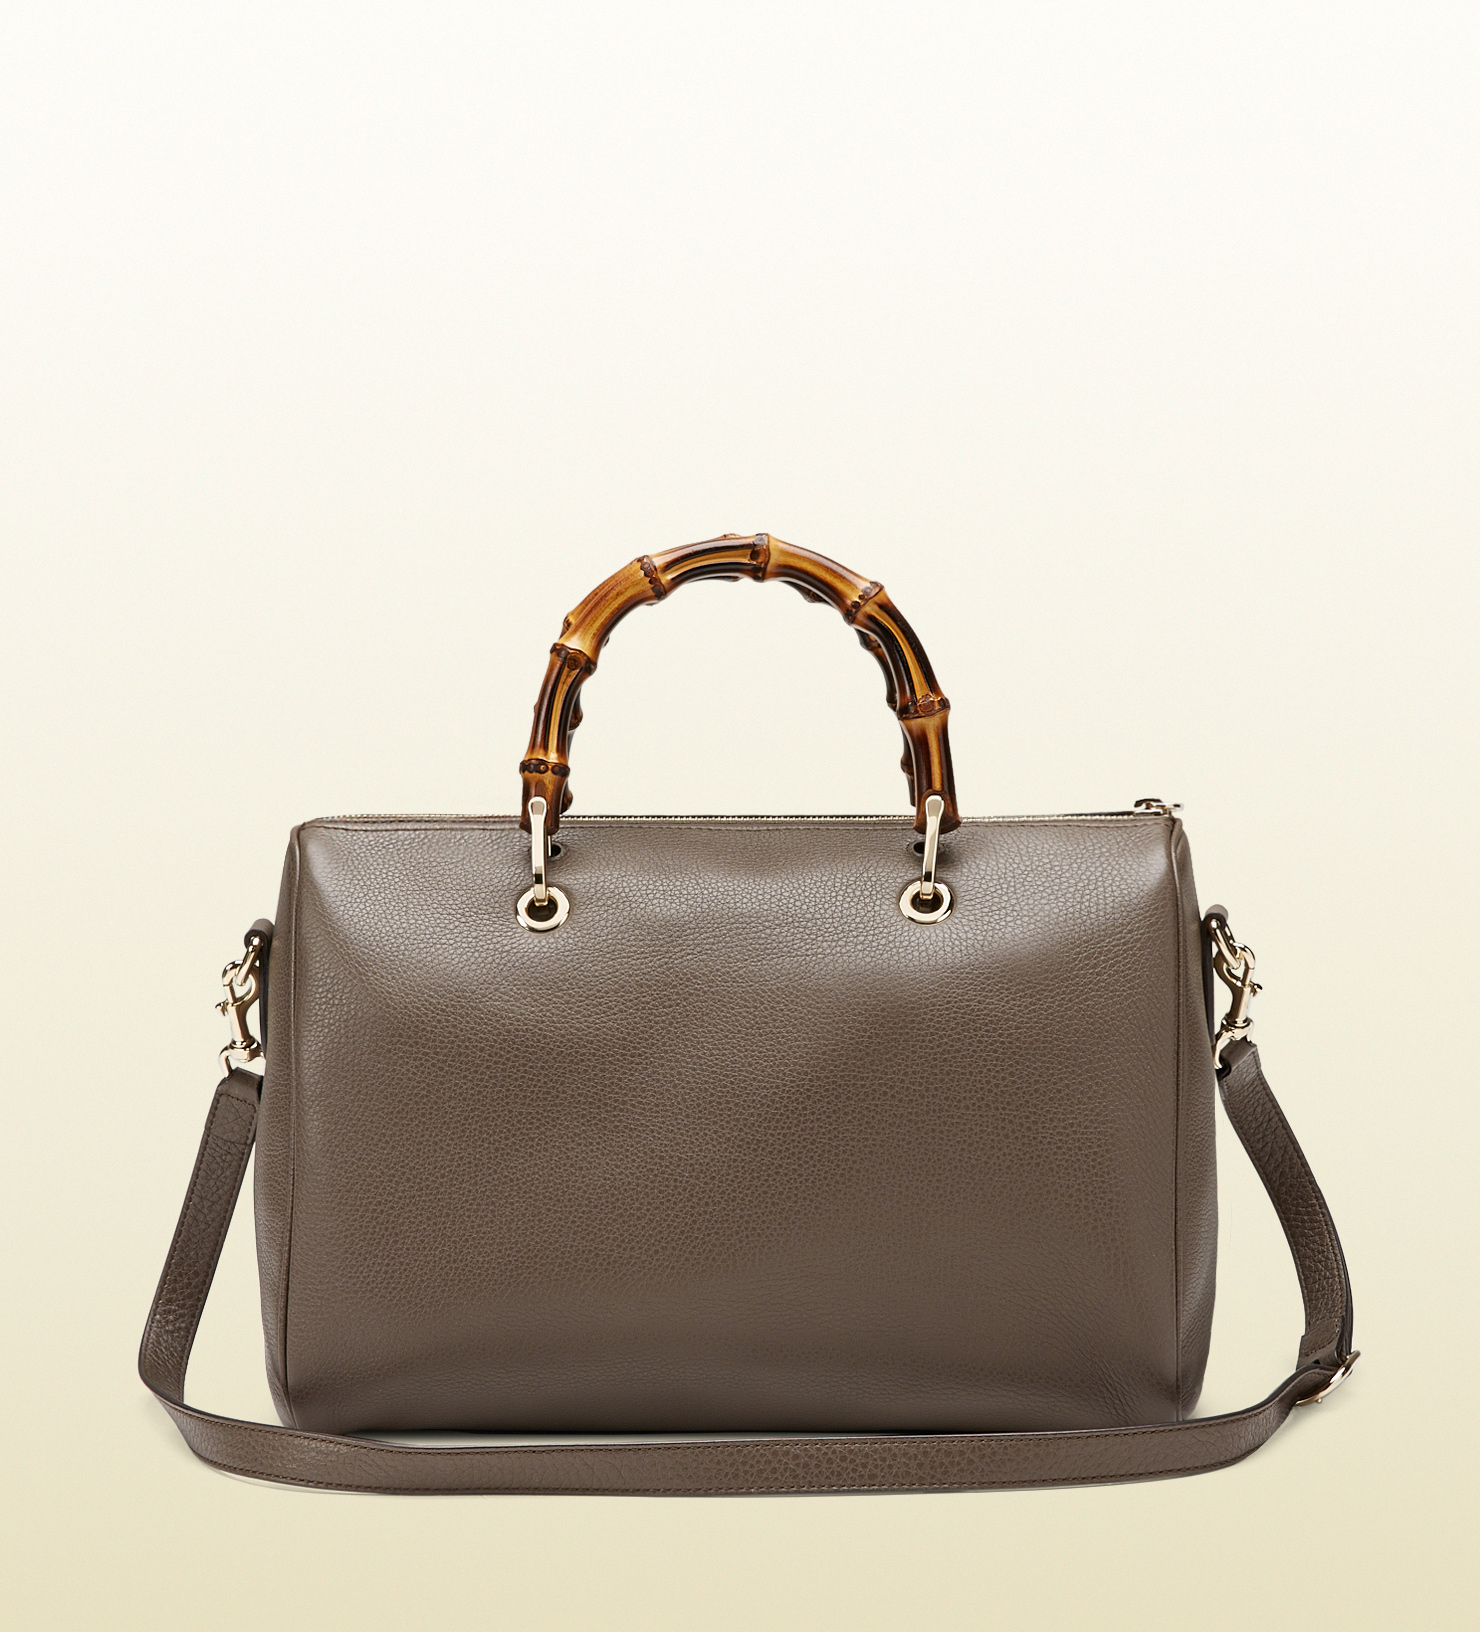 gucci bamboo shopper leather boston bag in gray lyst. Black Bedroom Furniture Sets. Home Design Ideas